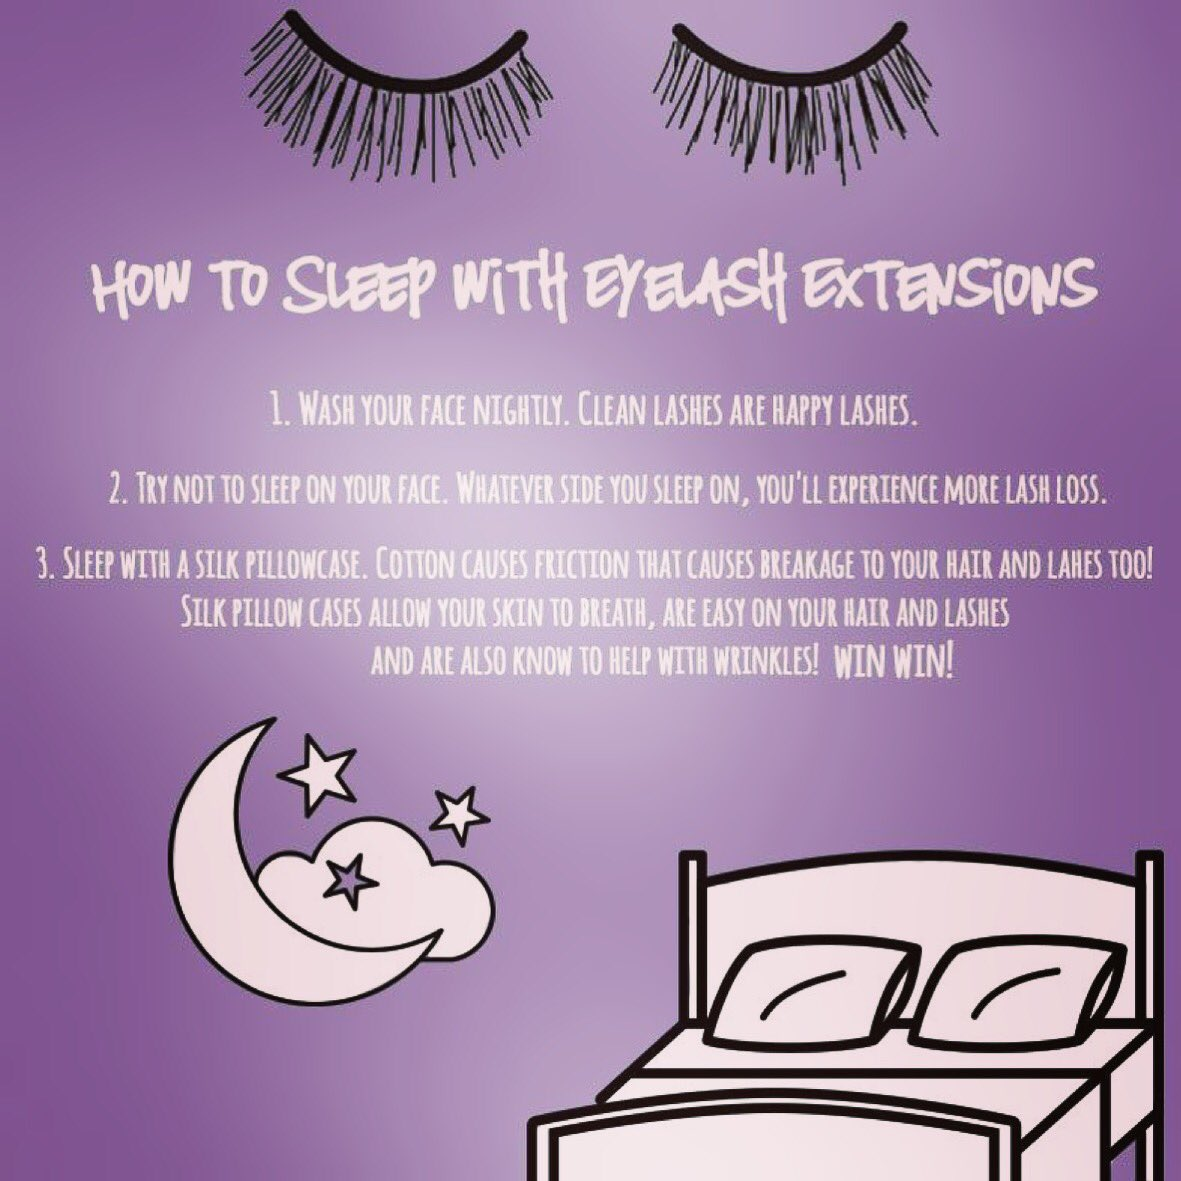 Lashes By Ginny On Twitter Sleeping With Eyelash Extensions All